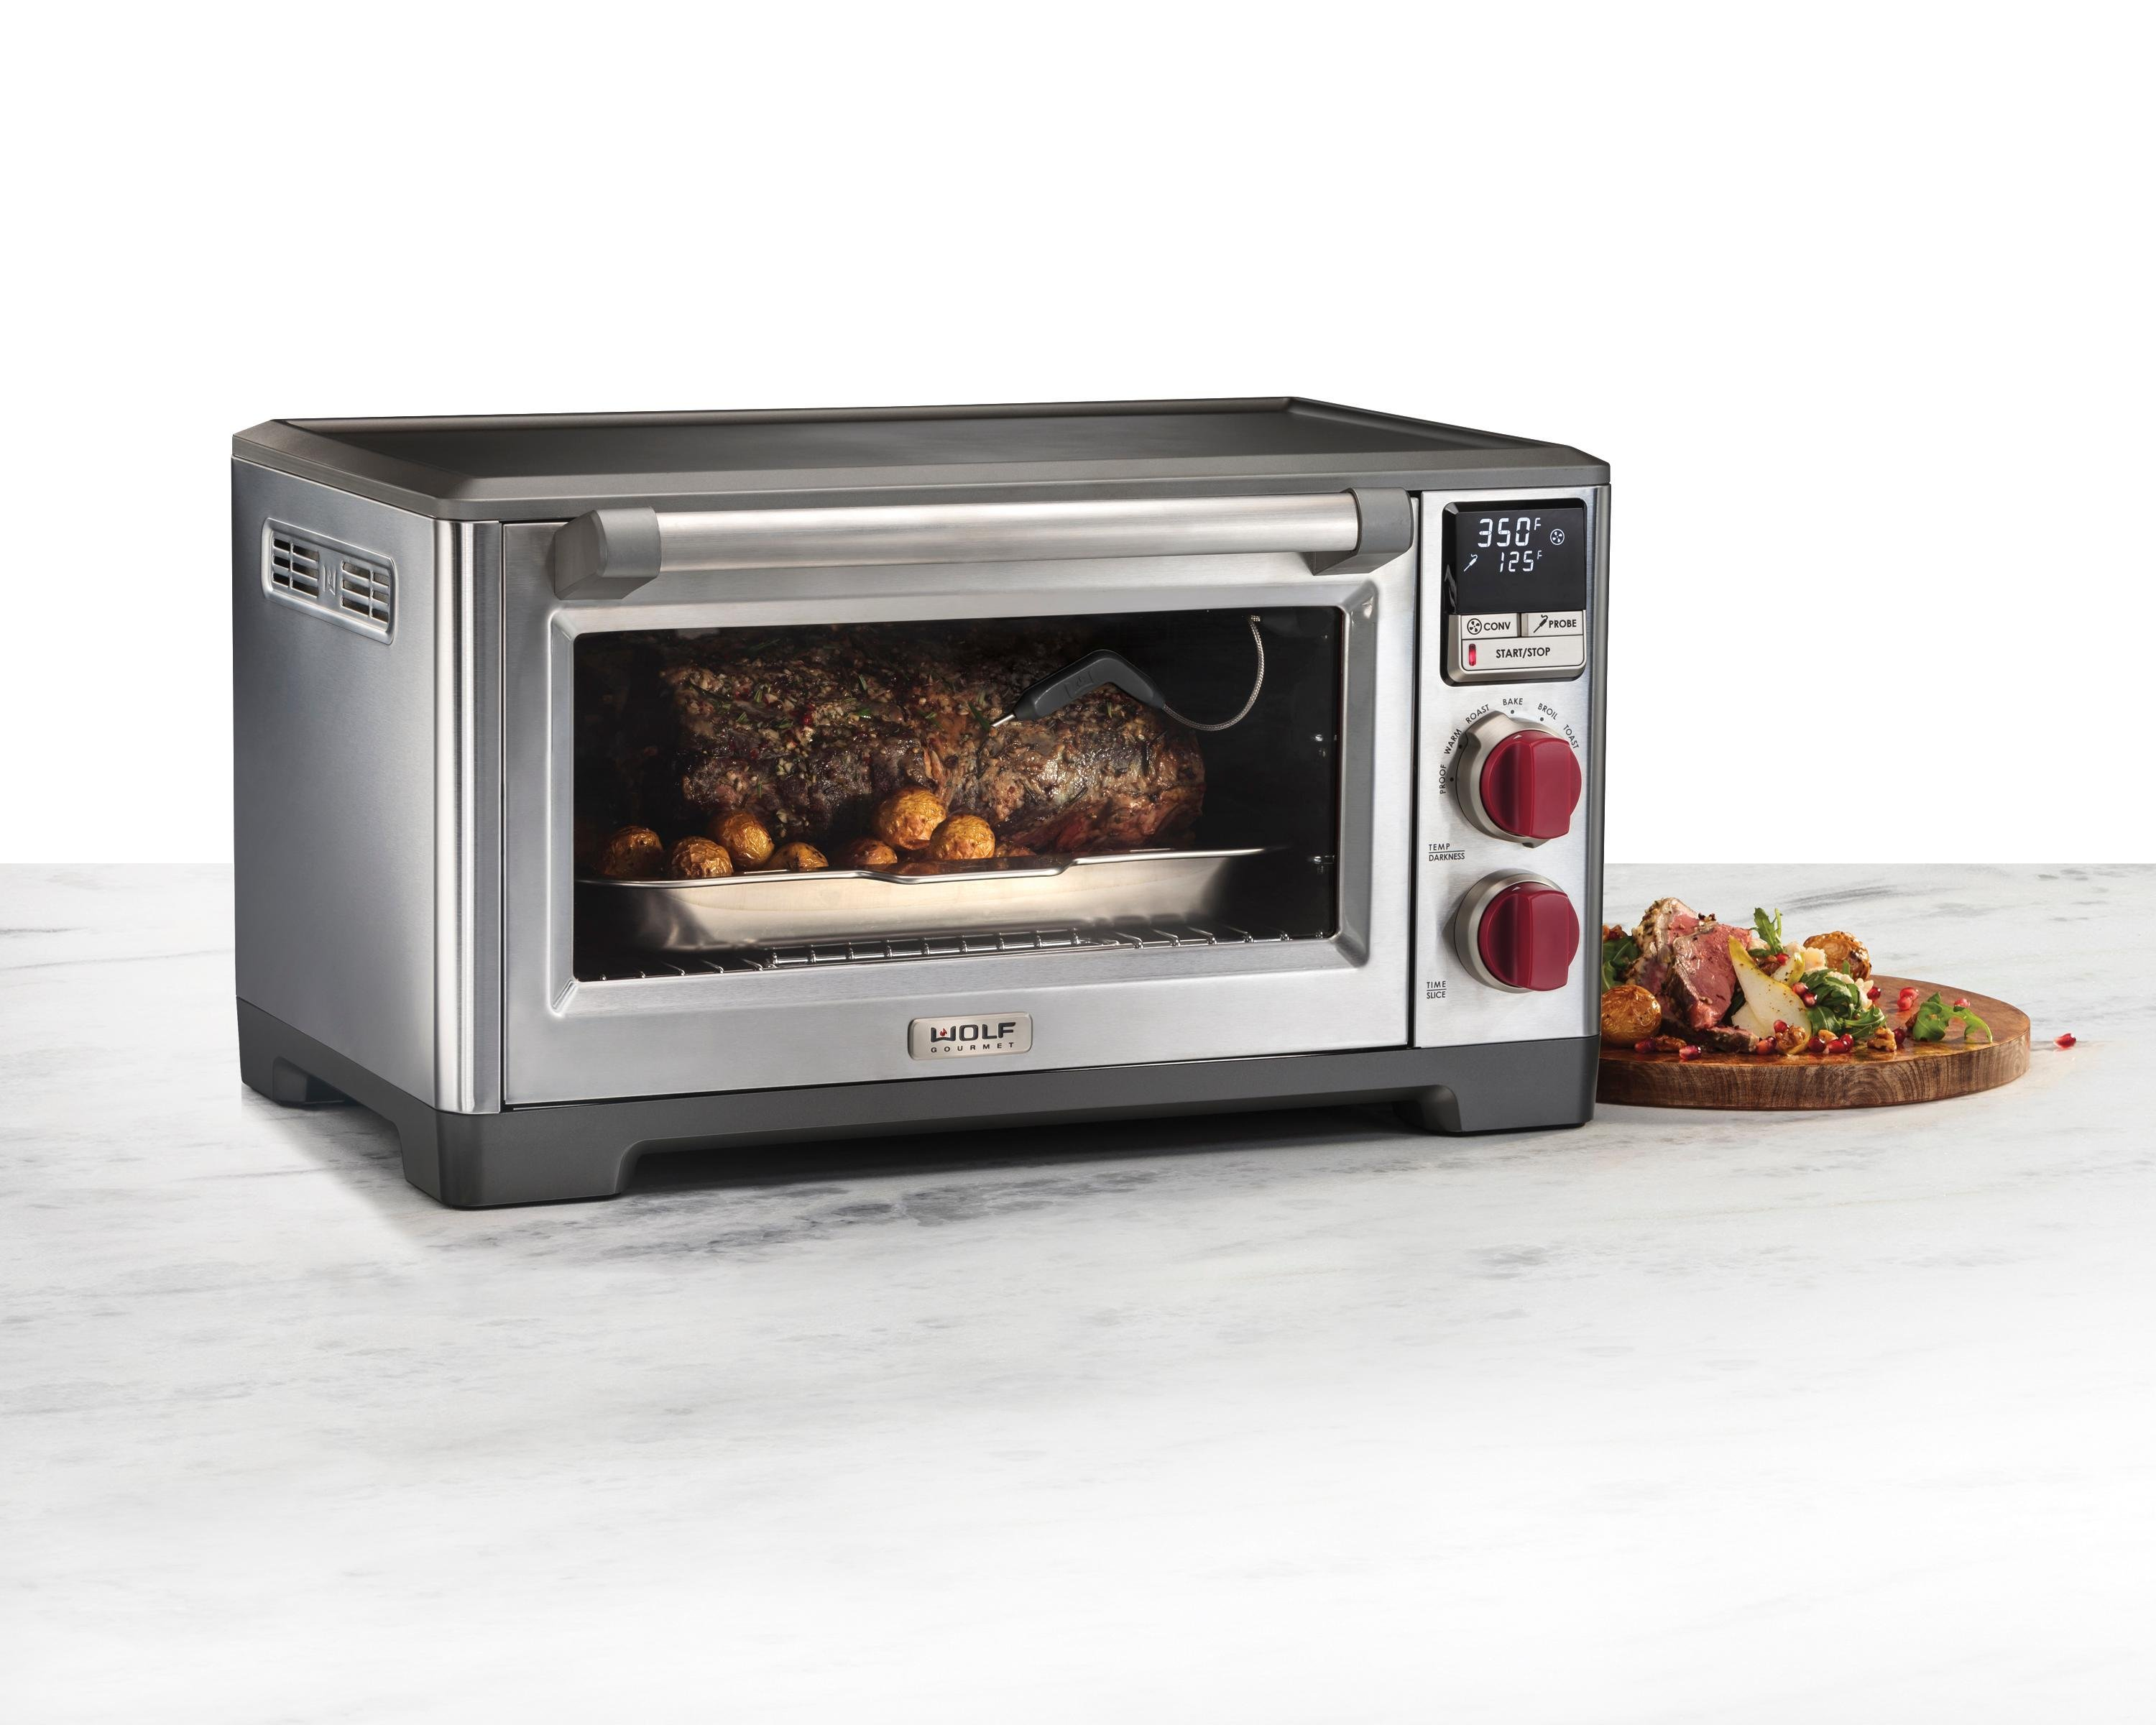 Countertop Convection Oven For Cookies : ... Gourmet WGCO100S Countertop Oven with Convection: Kitchen & Dining